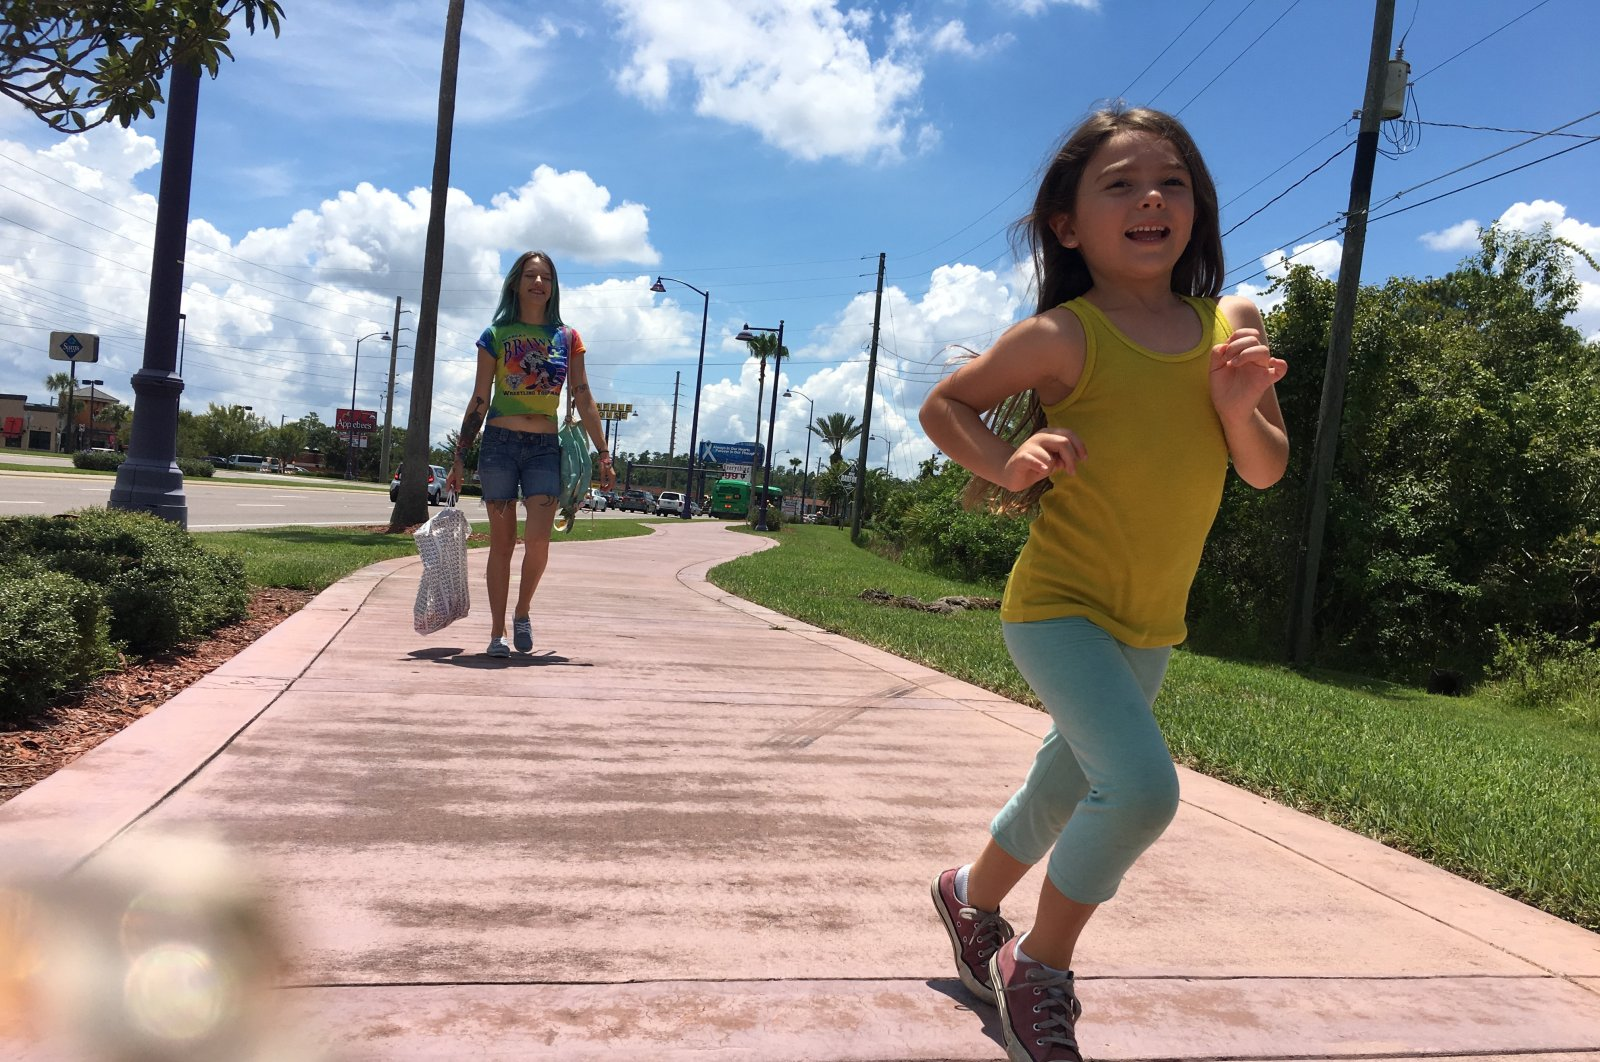 """Brooklynn Prince as """"Moonee"""" runs towards the camera as Bria Vinaite, playing her mother """"Halley"""" in the movie, follows, in a still shot from """"The Florida Project"""" directed by Sean Baker.(Archive Photo)"""